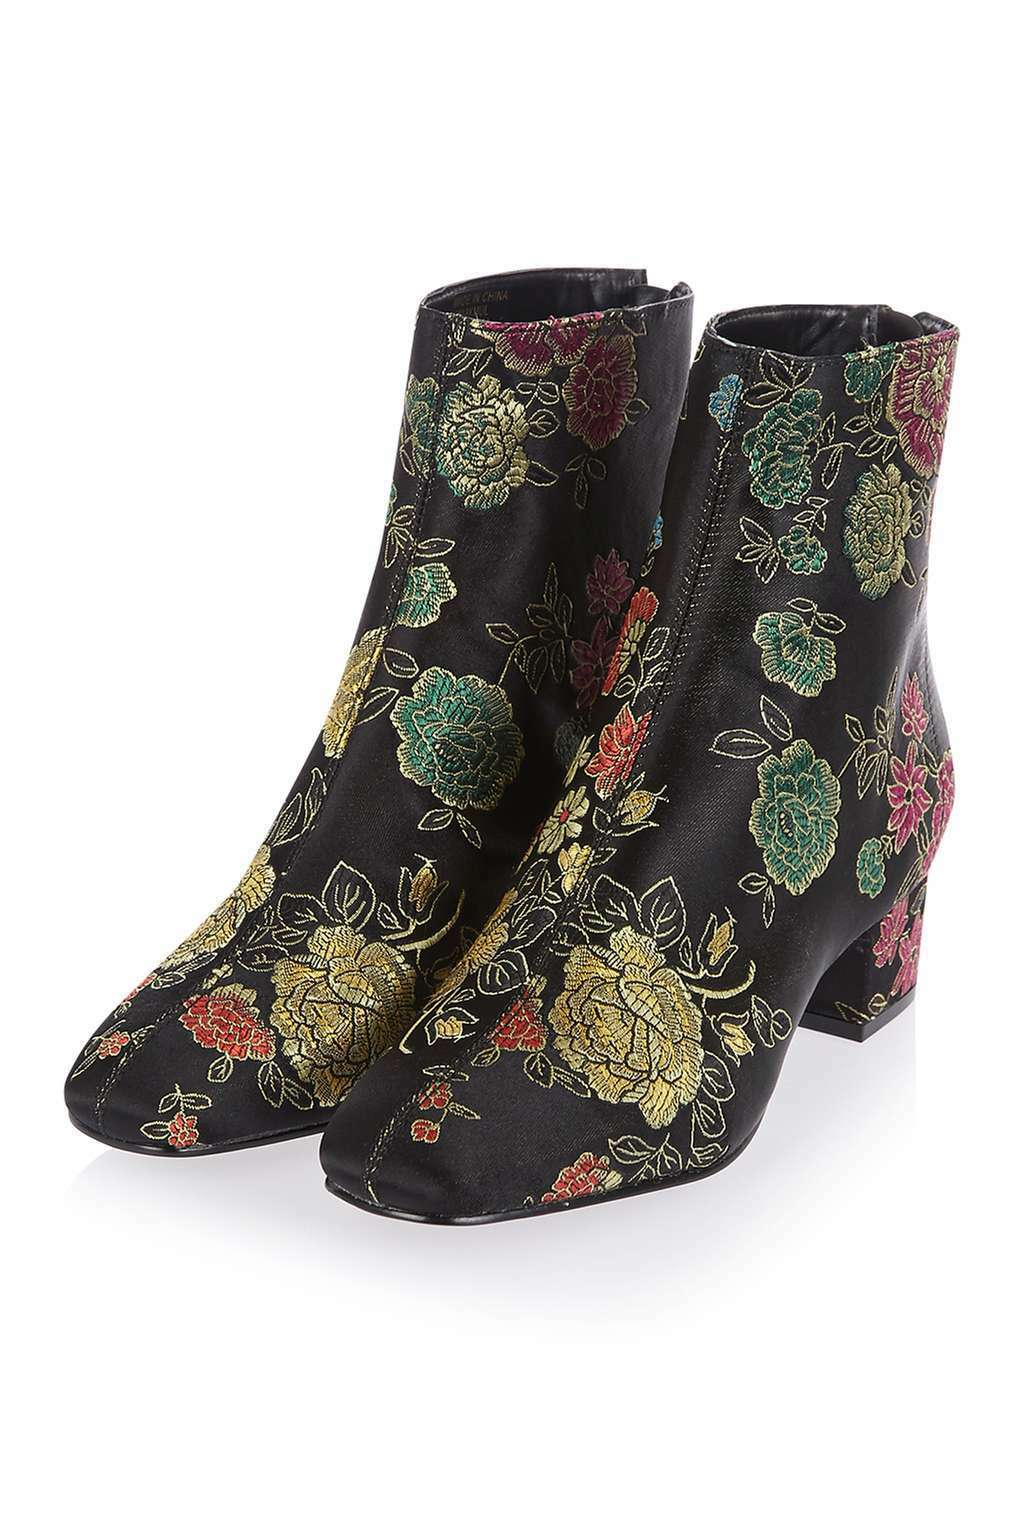 TOPSHOP FLORAL EMBROIDEROT ANKLE BOOTS SIZE UK 4 5